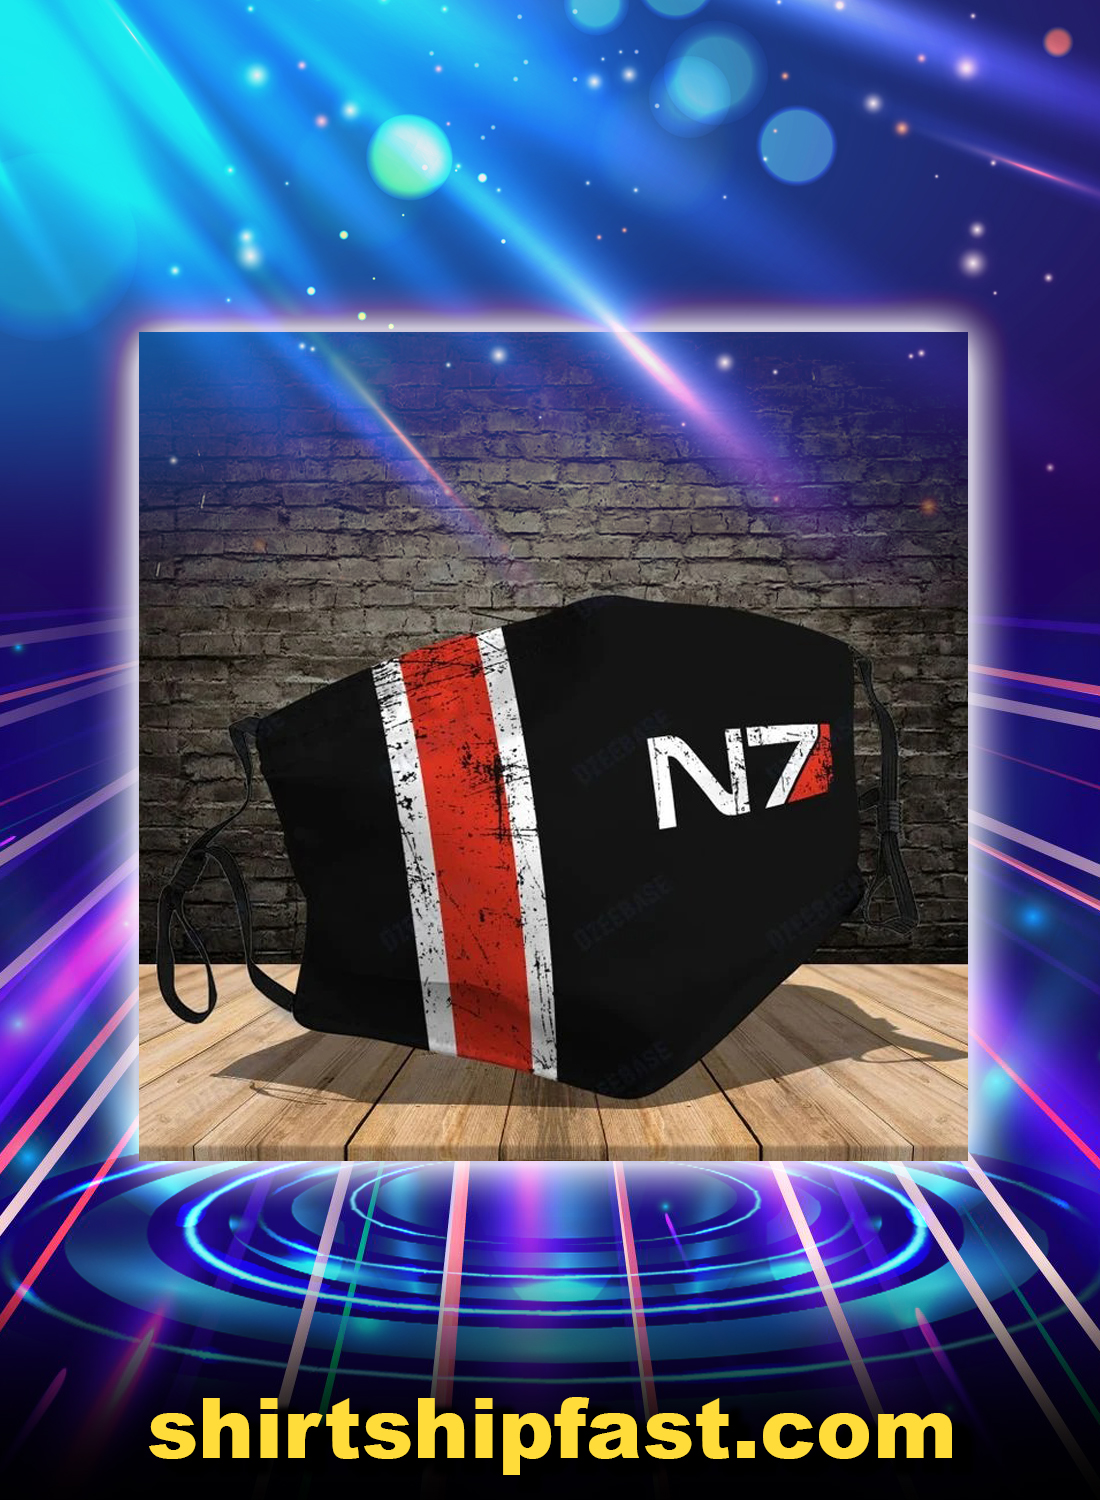 N7 mass effect face mask - Picture 1